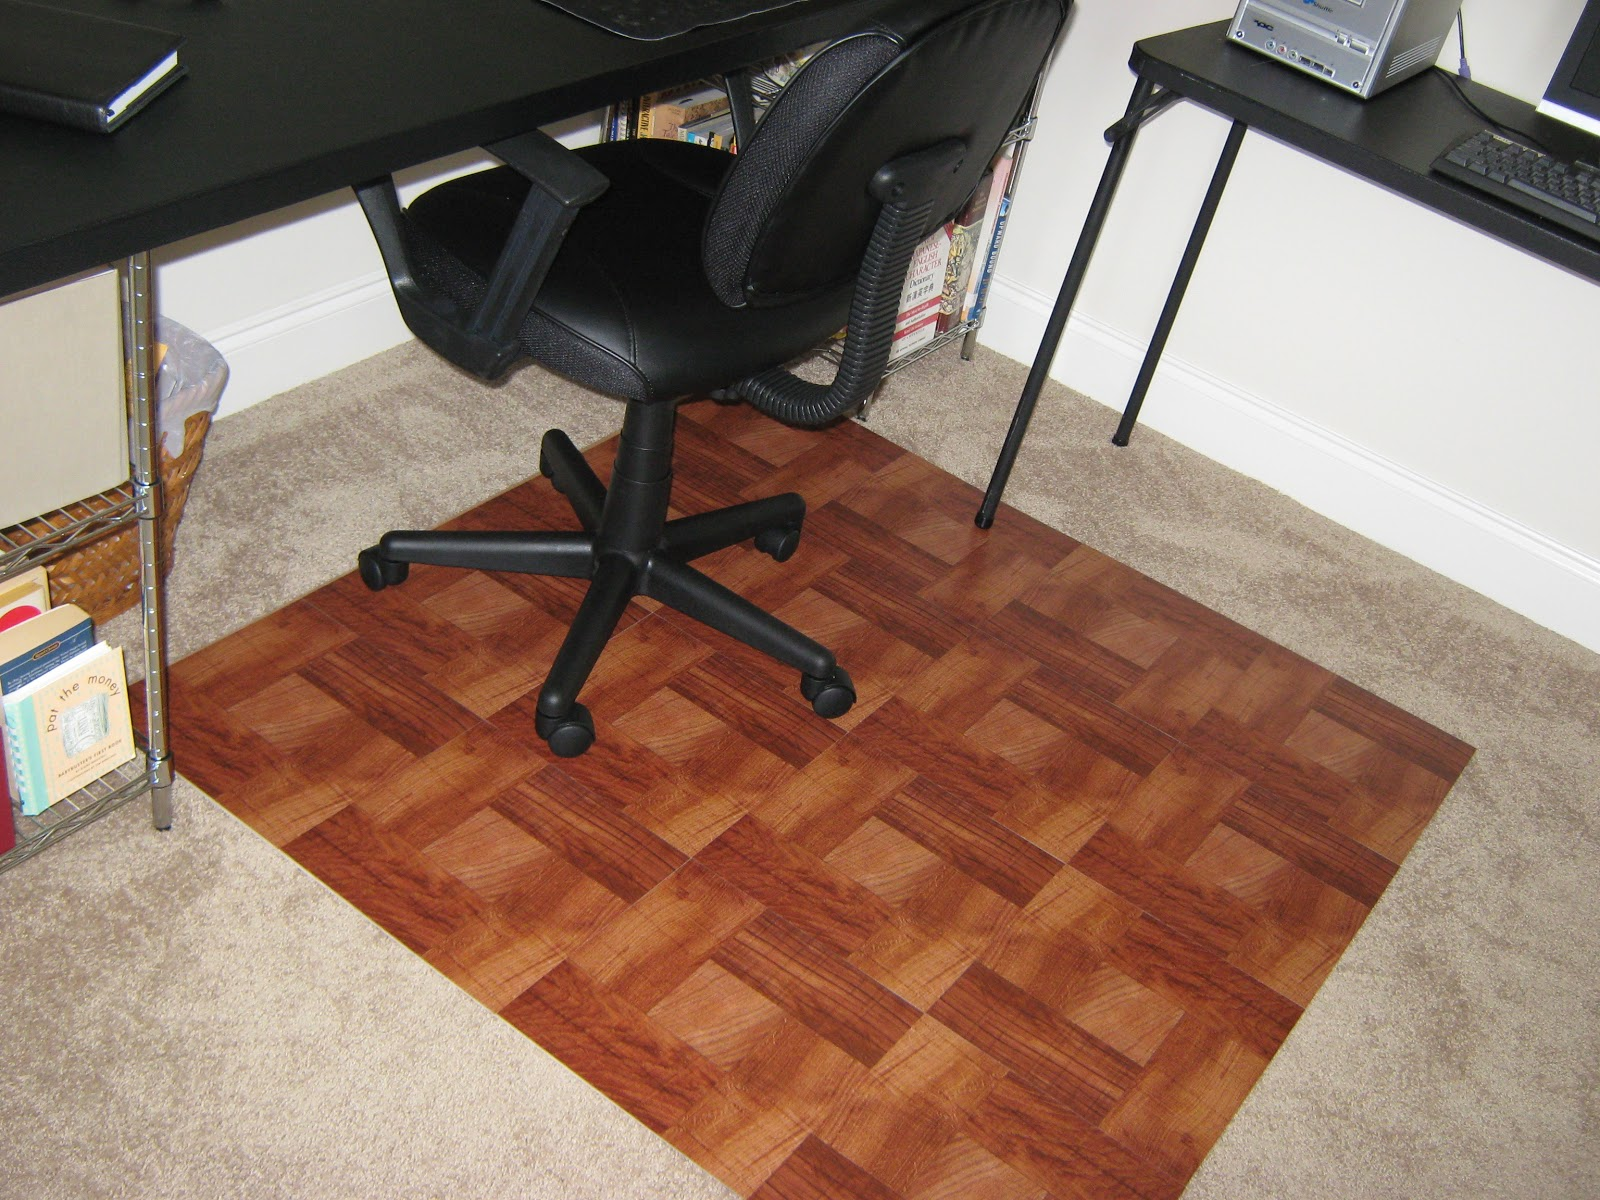 Desk Chair Mat For Carpet Create A Better Overview Of Your Ambience By Using Chair